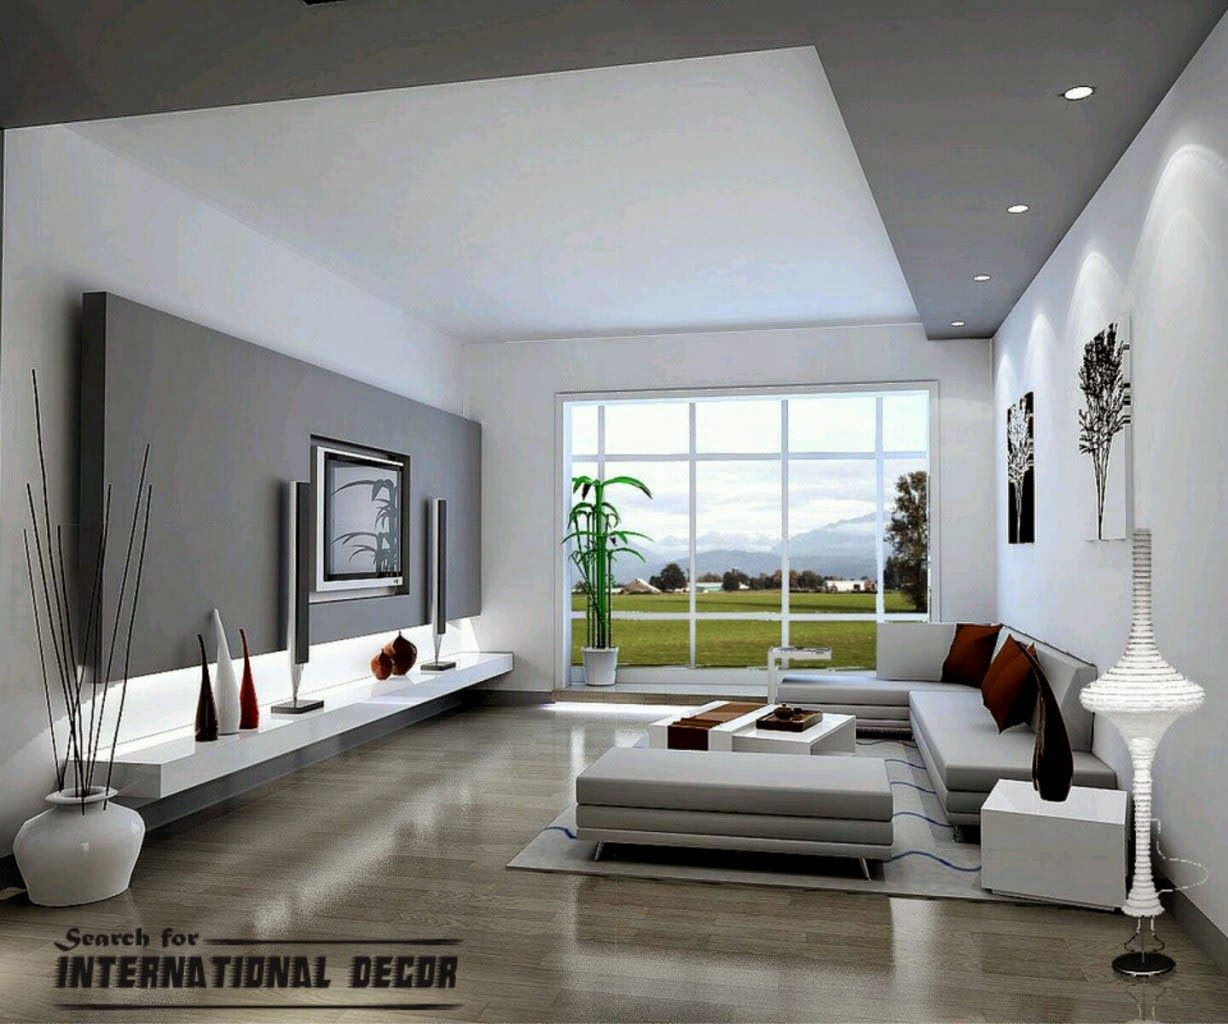 modern living room decor and design paint part of ceiling to match silver travertine wall - Home Decor And Design